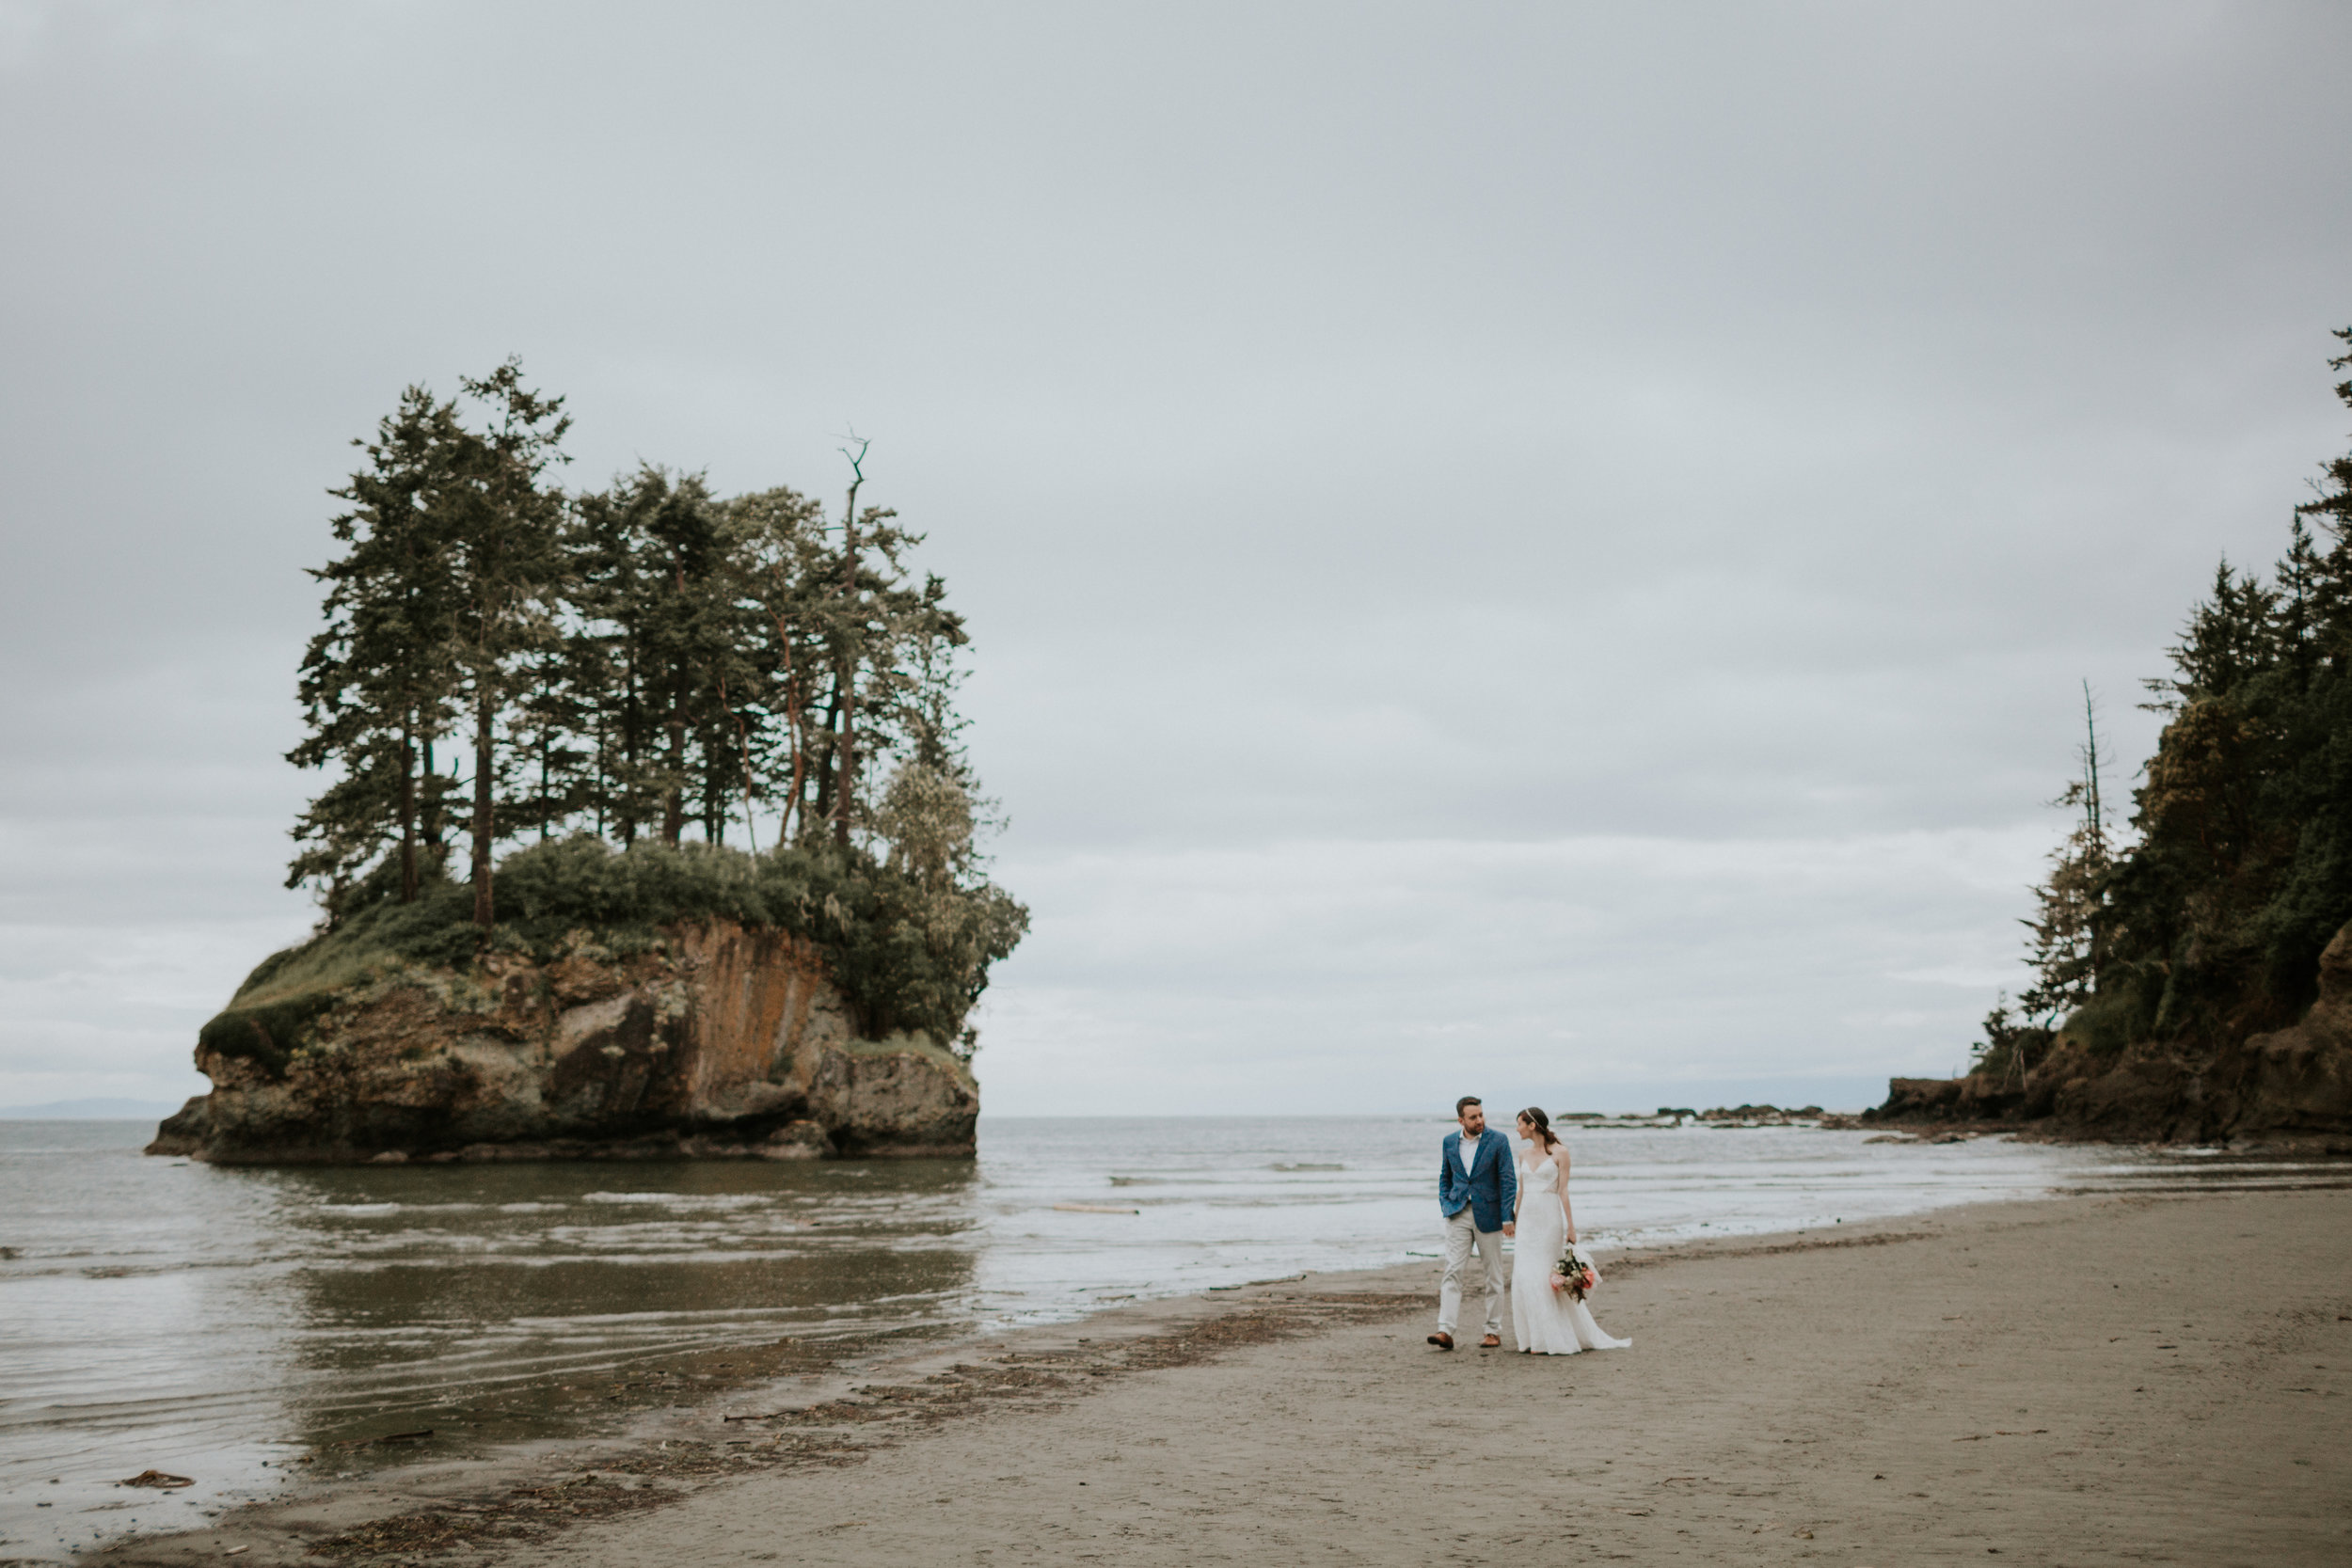 PNW-elopement-wedding-engagement-olympic national park-port angeles-hurricane ridge-lake crescent-kayla dawn photography- photographer-photography-kayladawnphoto-296.jpg